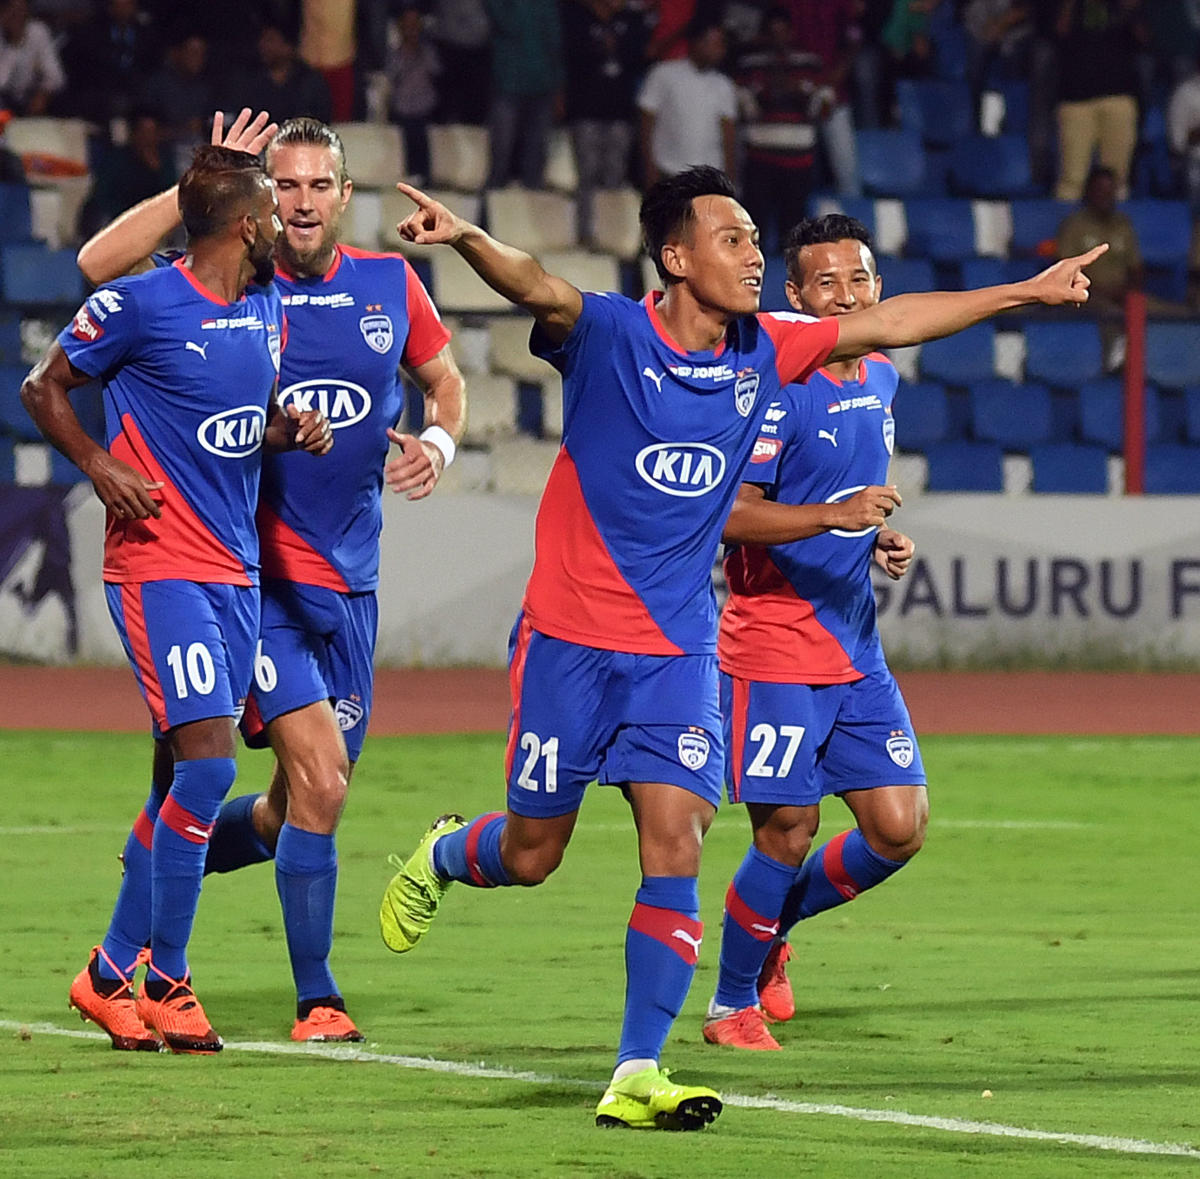 Udanta Singh (No 21) celebrates after scoring BFC's first goal against FC Pune City during their ISL match in Bengaluru on Friday. DH Photo/ Srikanta Sharma R